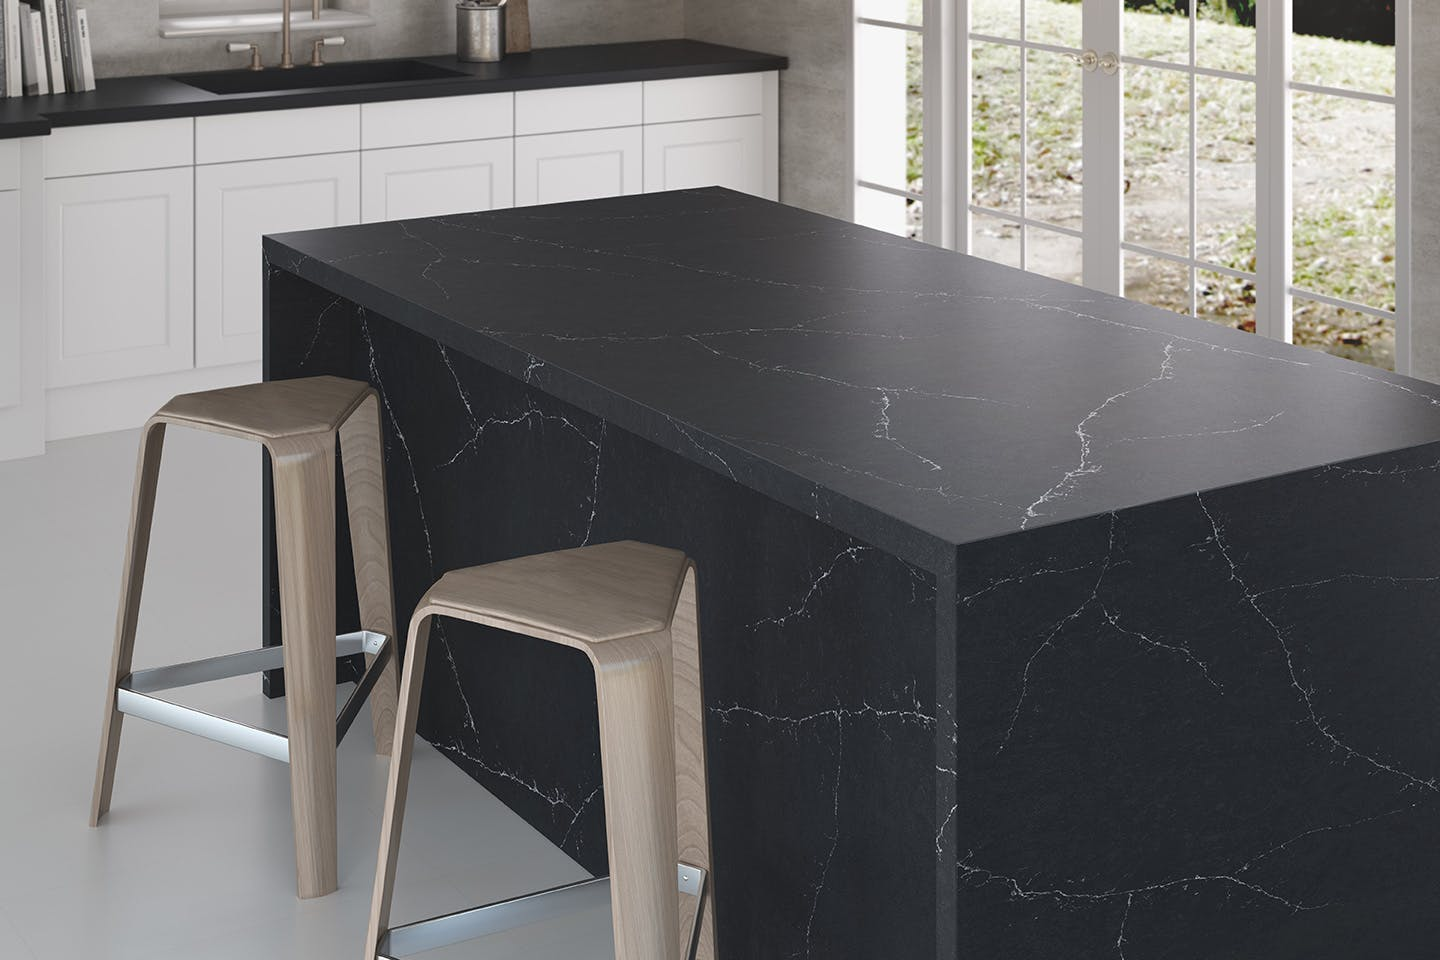 Porcelanic Countertops